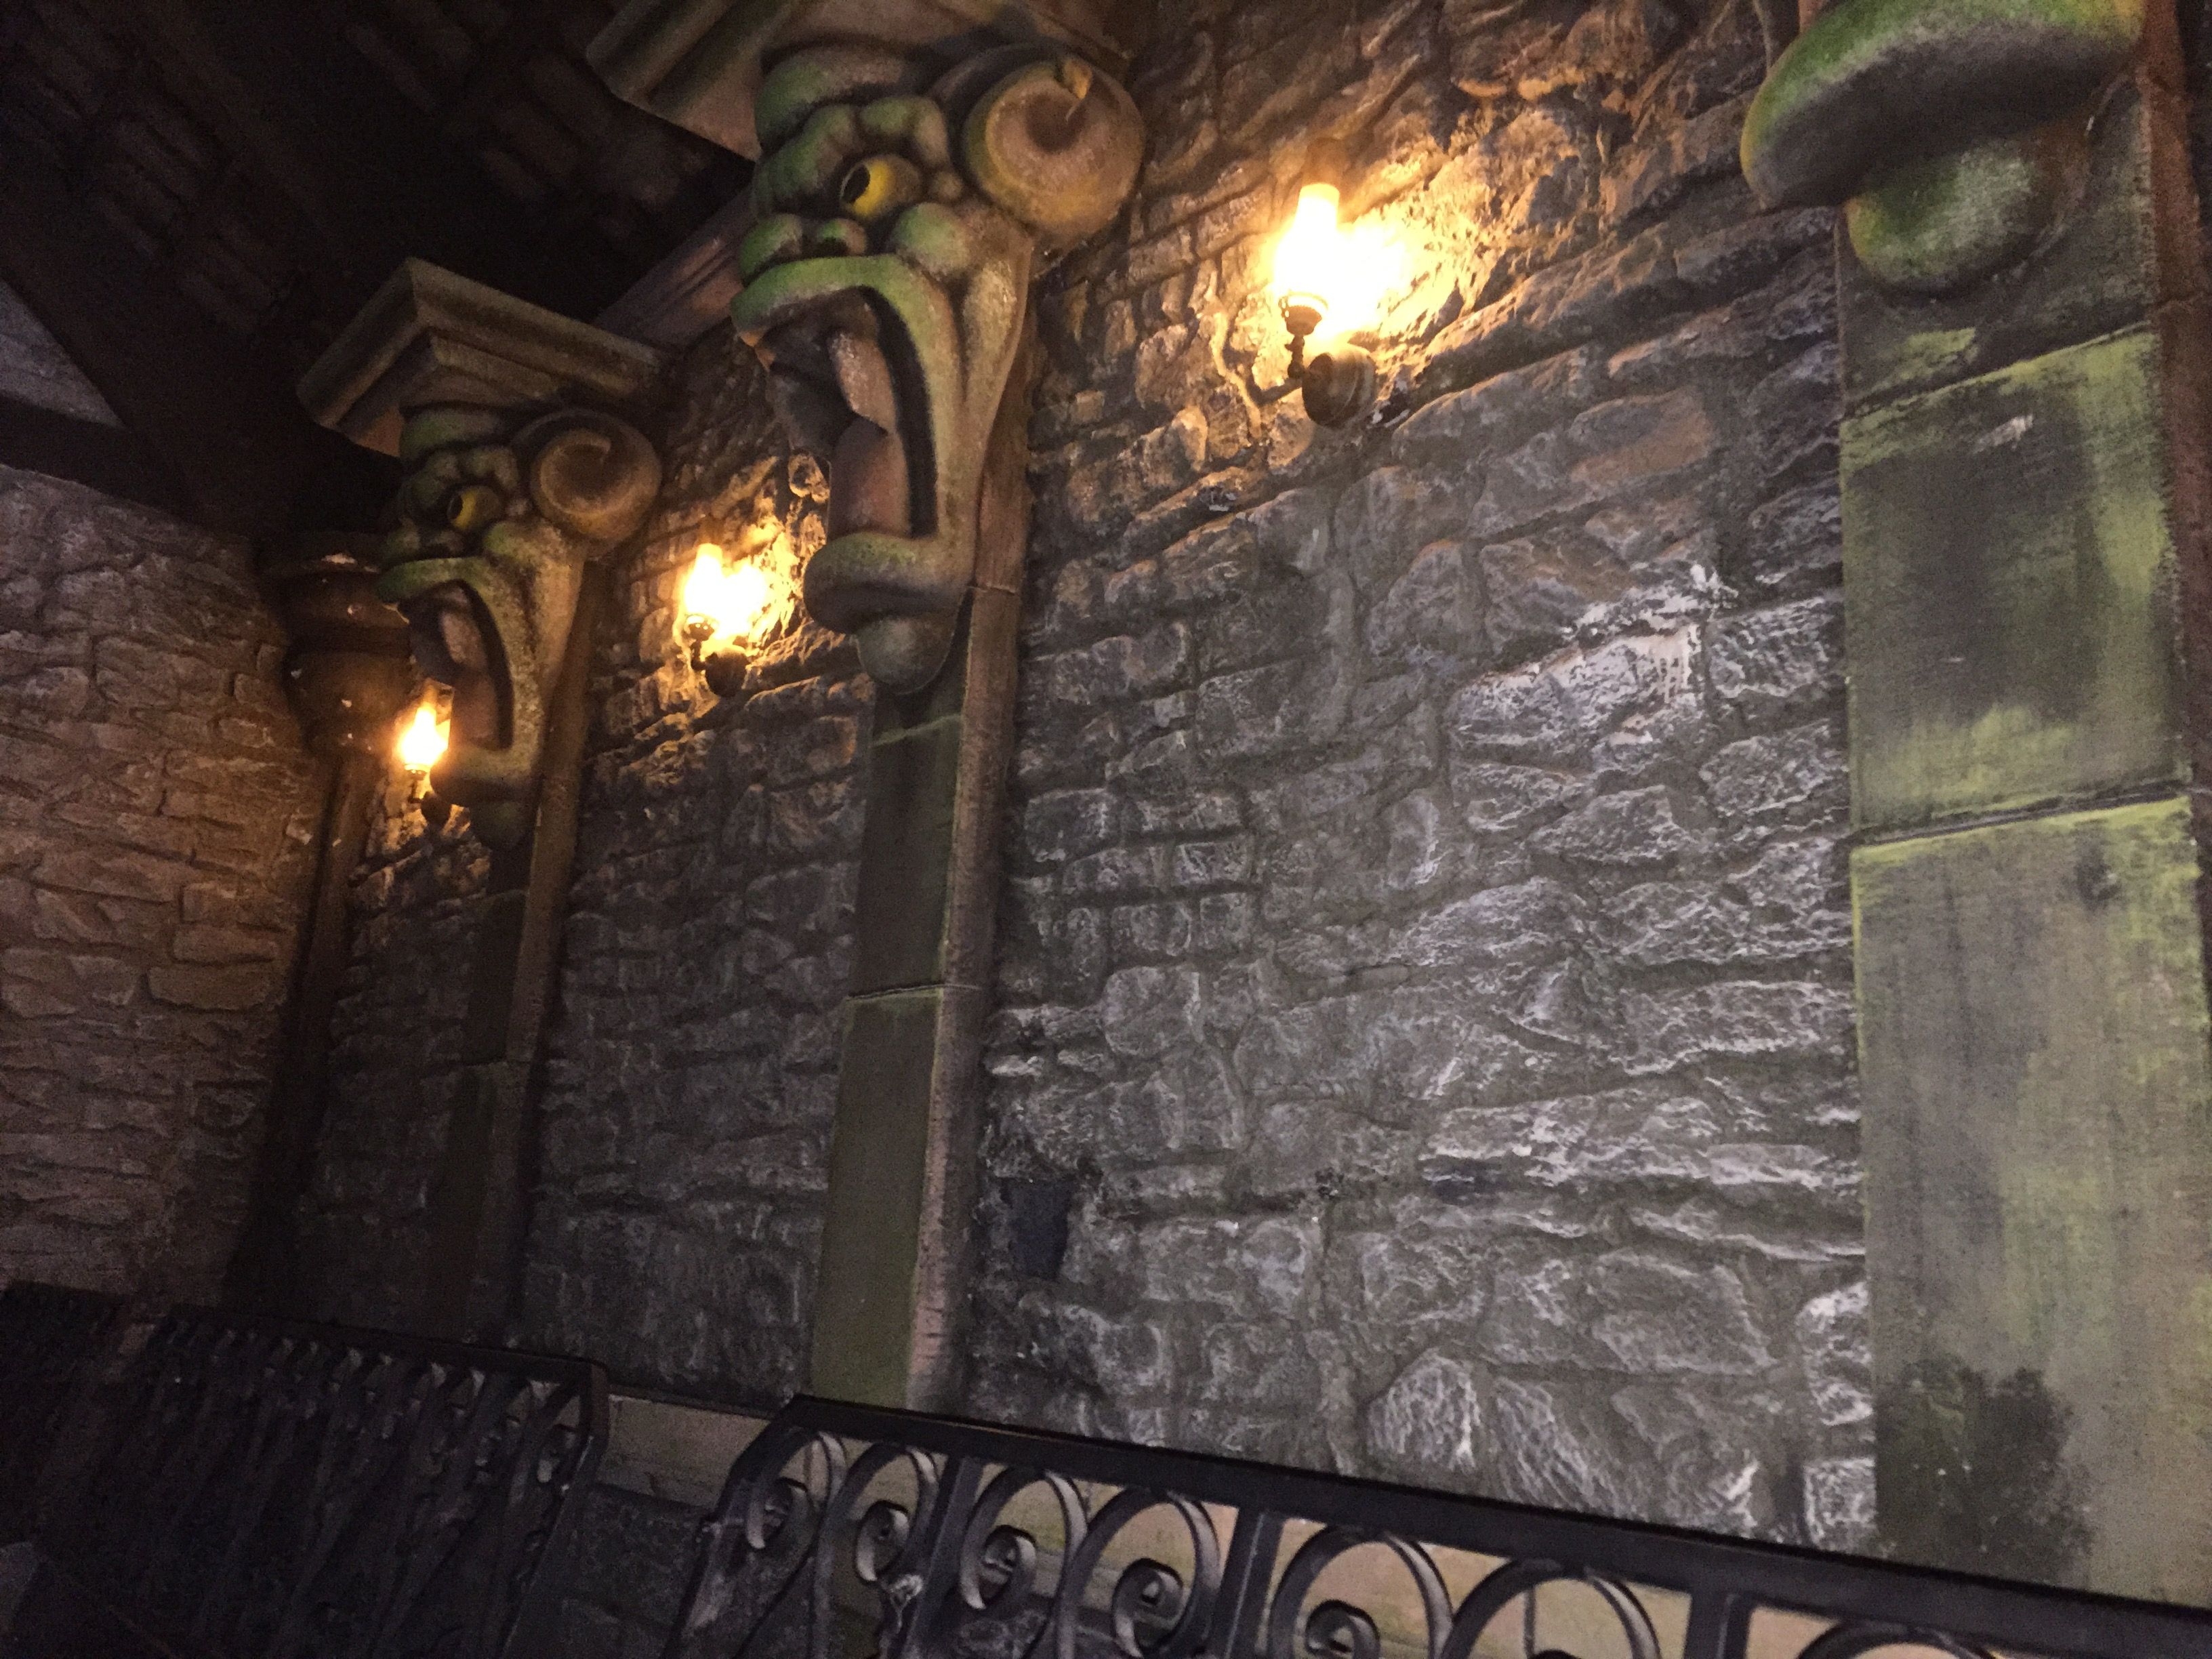 Theming inside the crypt in the haunted Vicarage